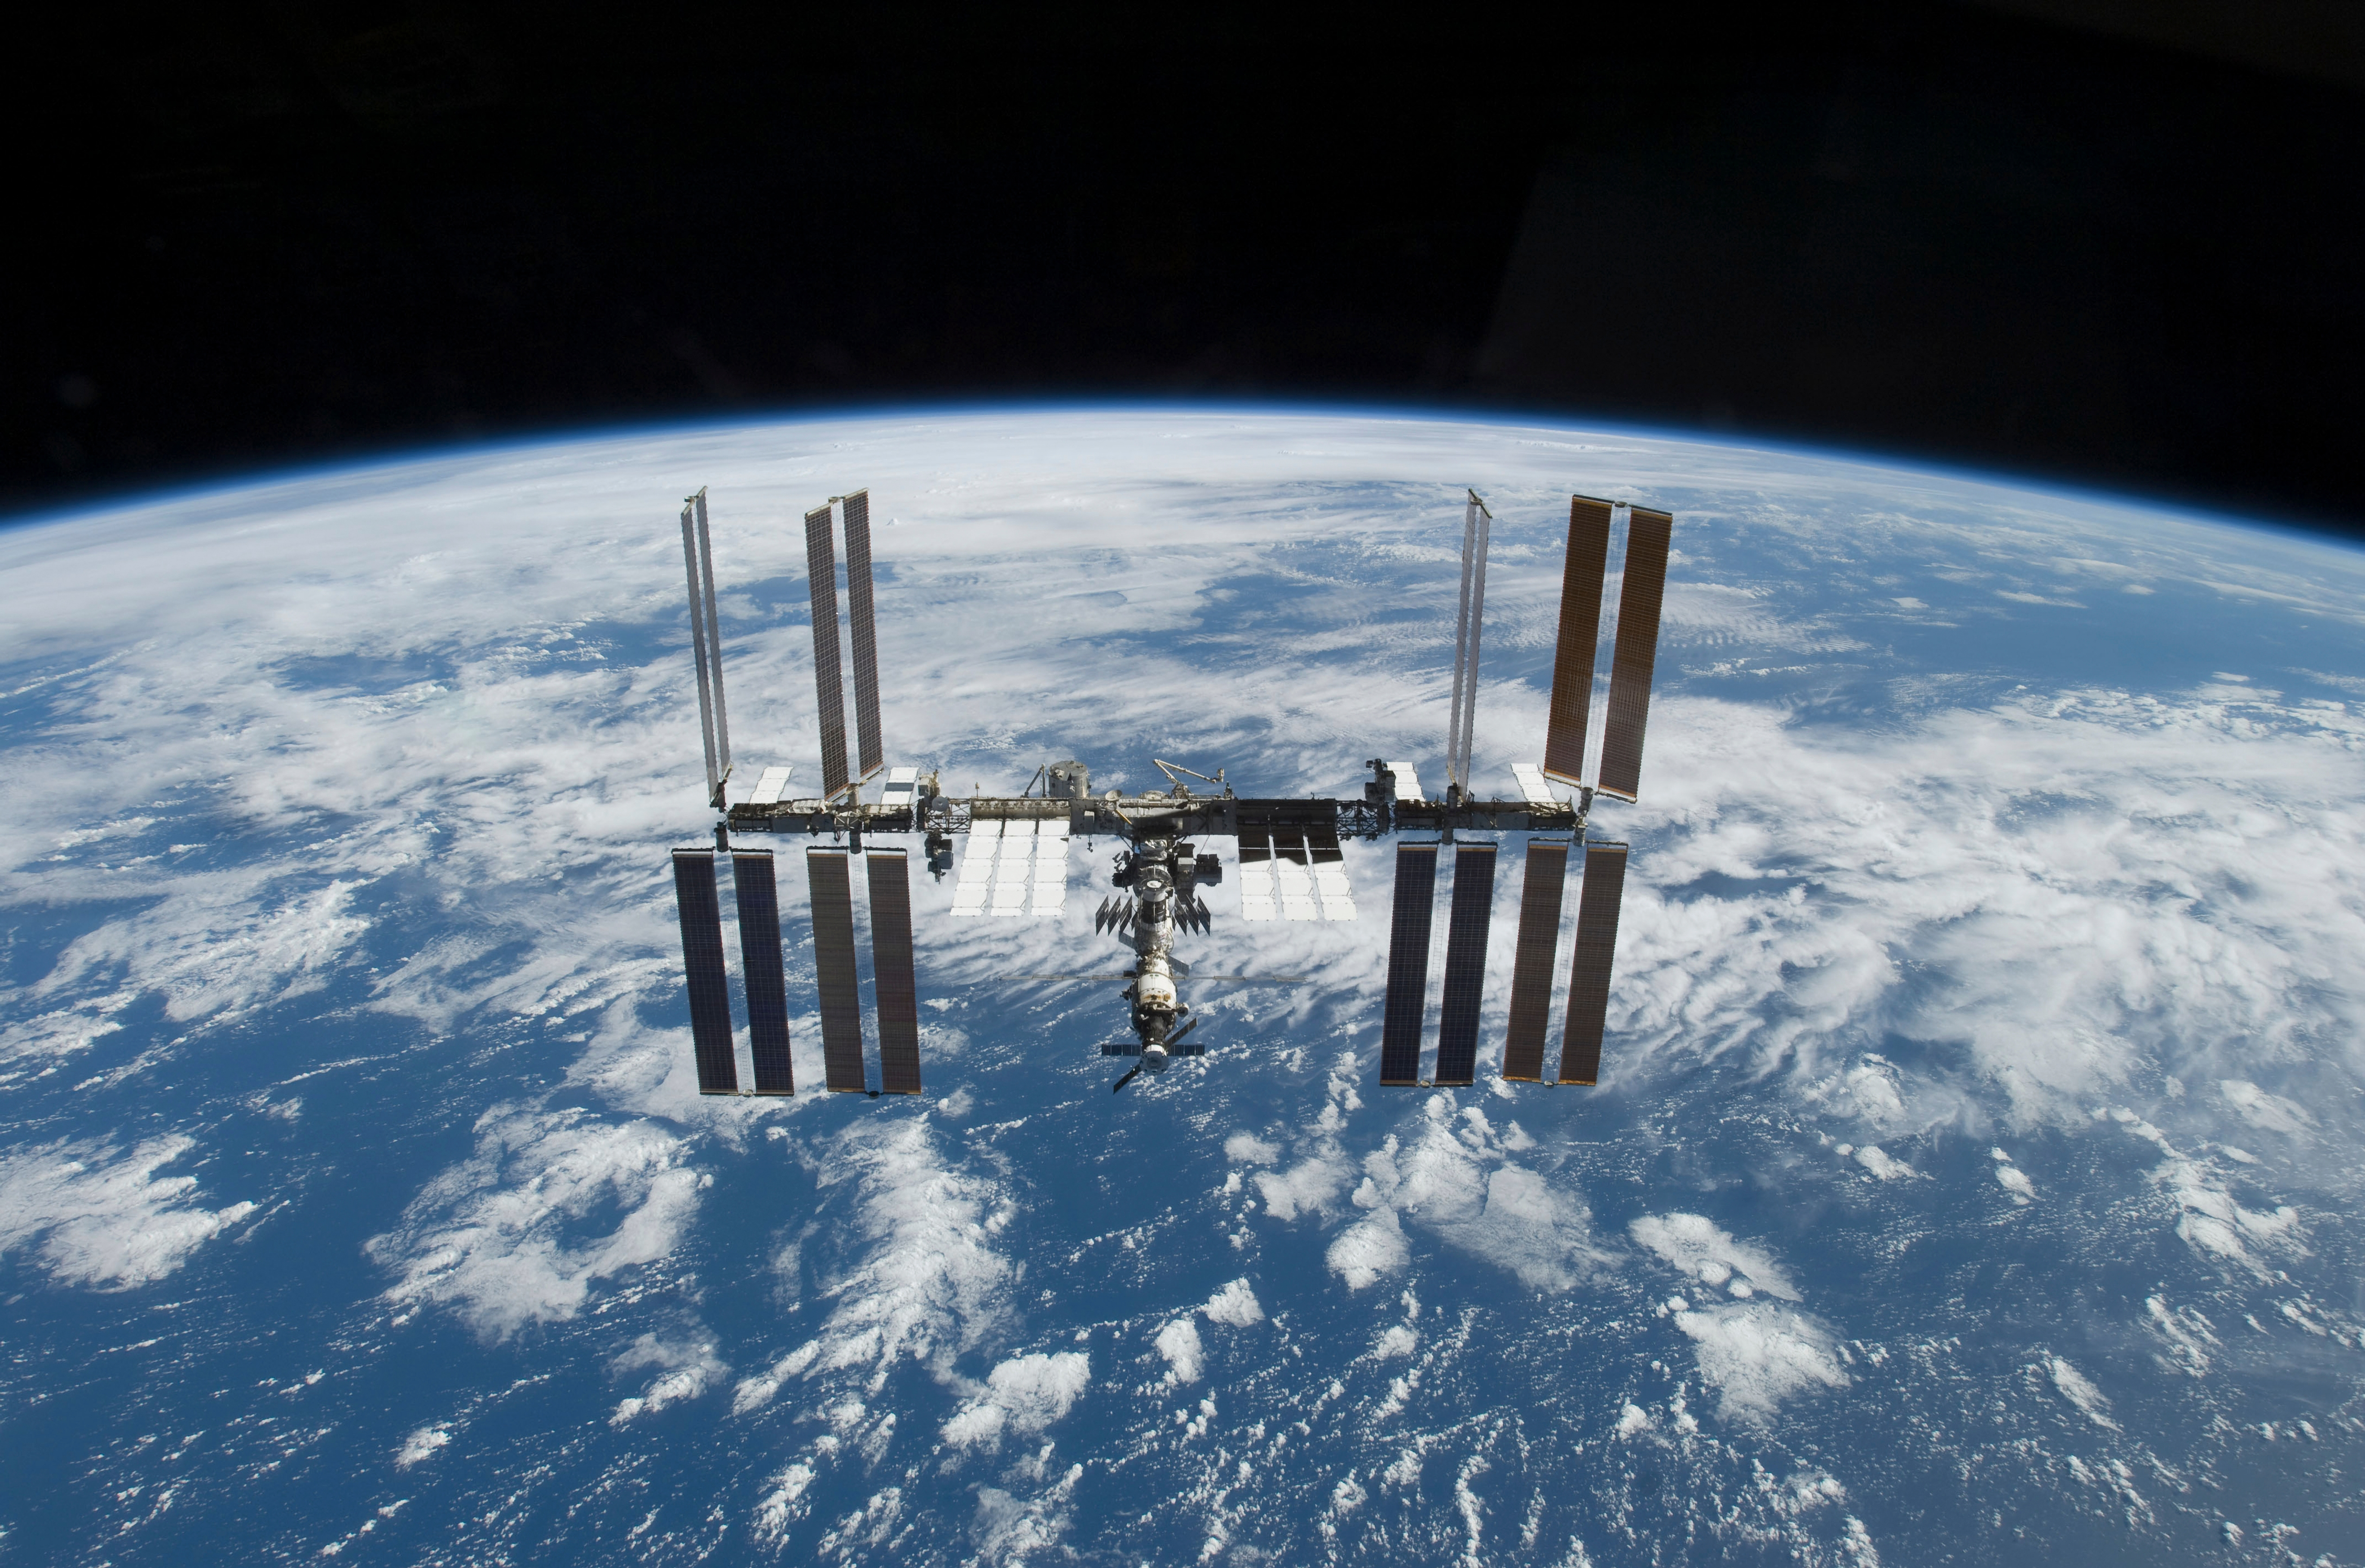 Both projects will be filmed on the International Space Station